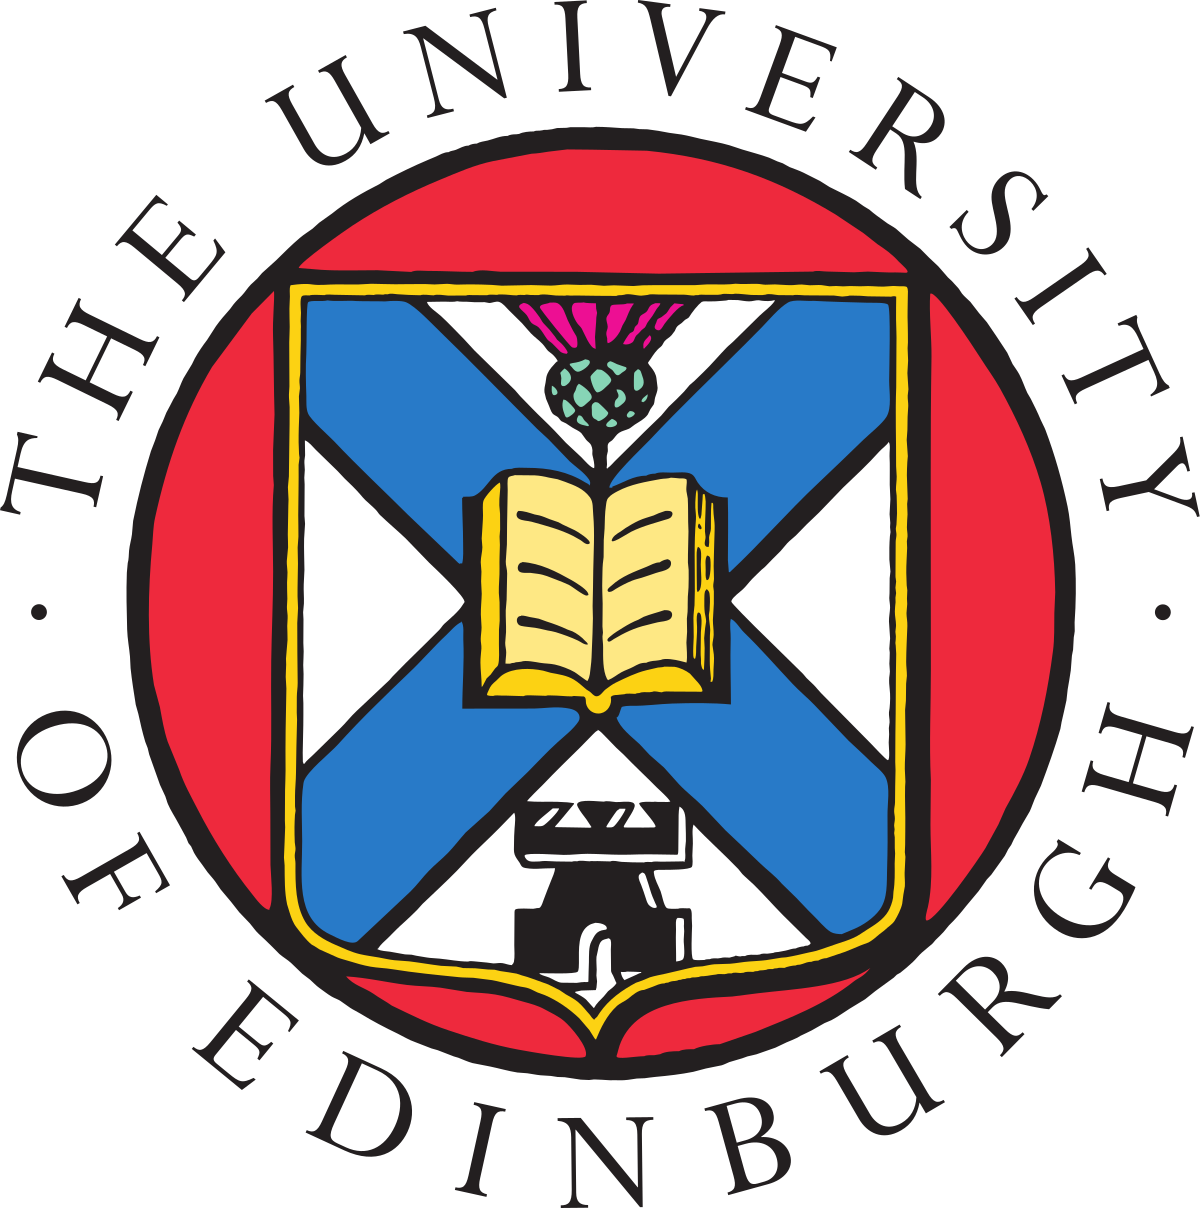 University of edinburgh micromaster program